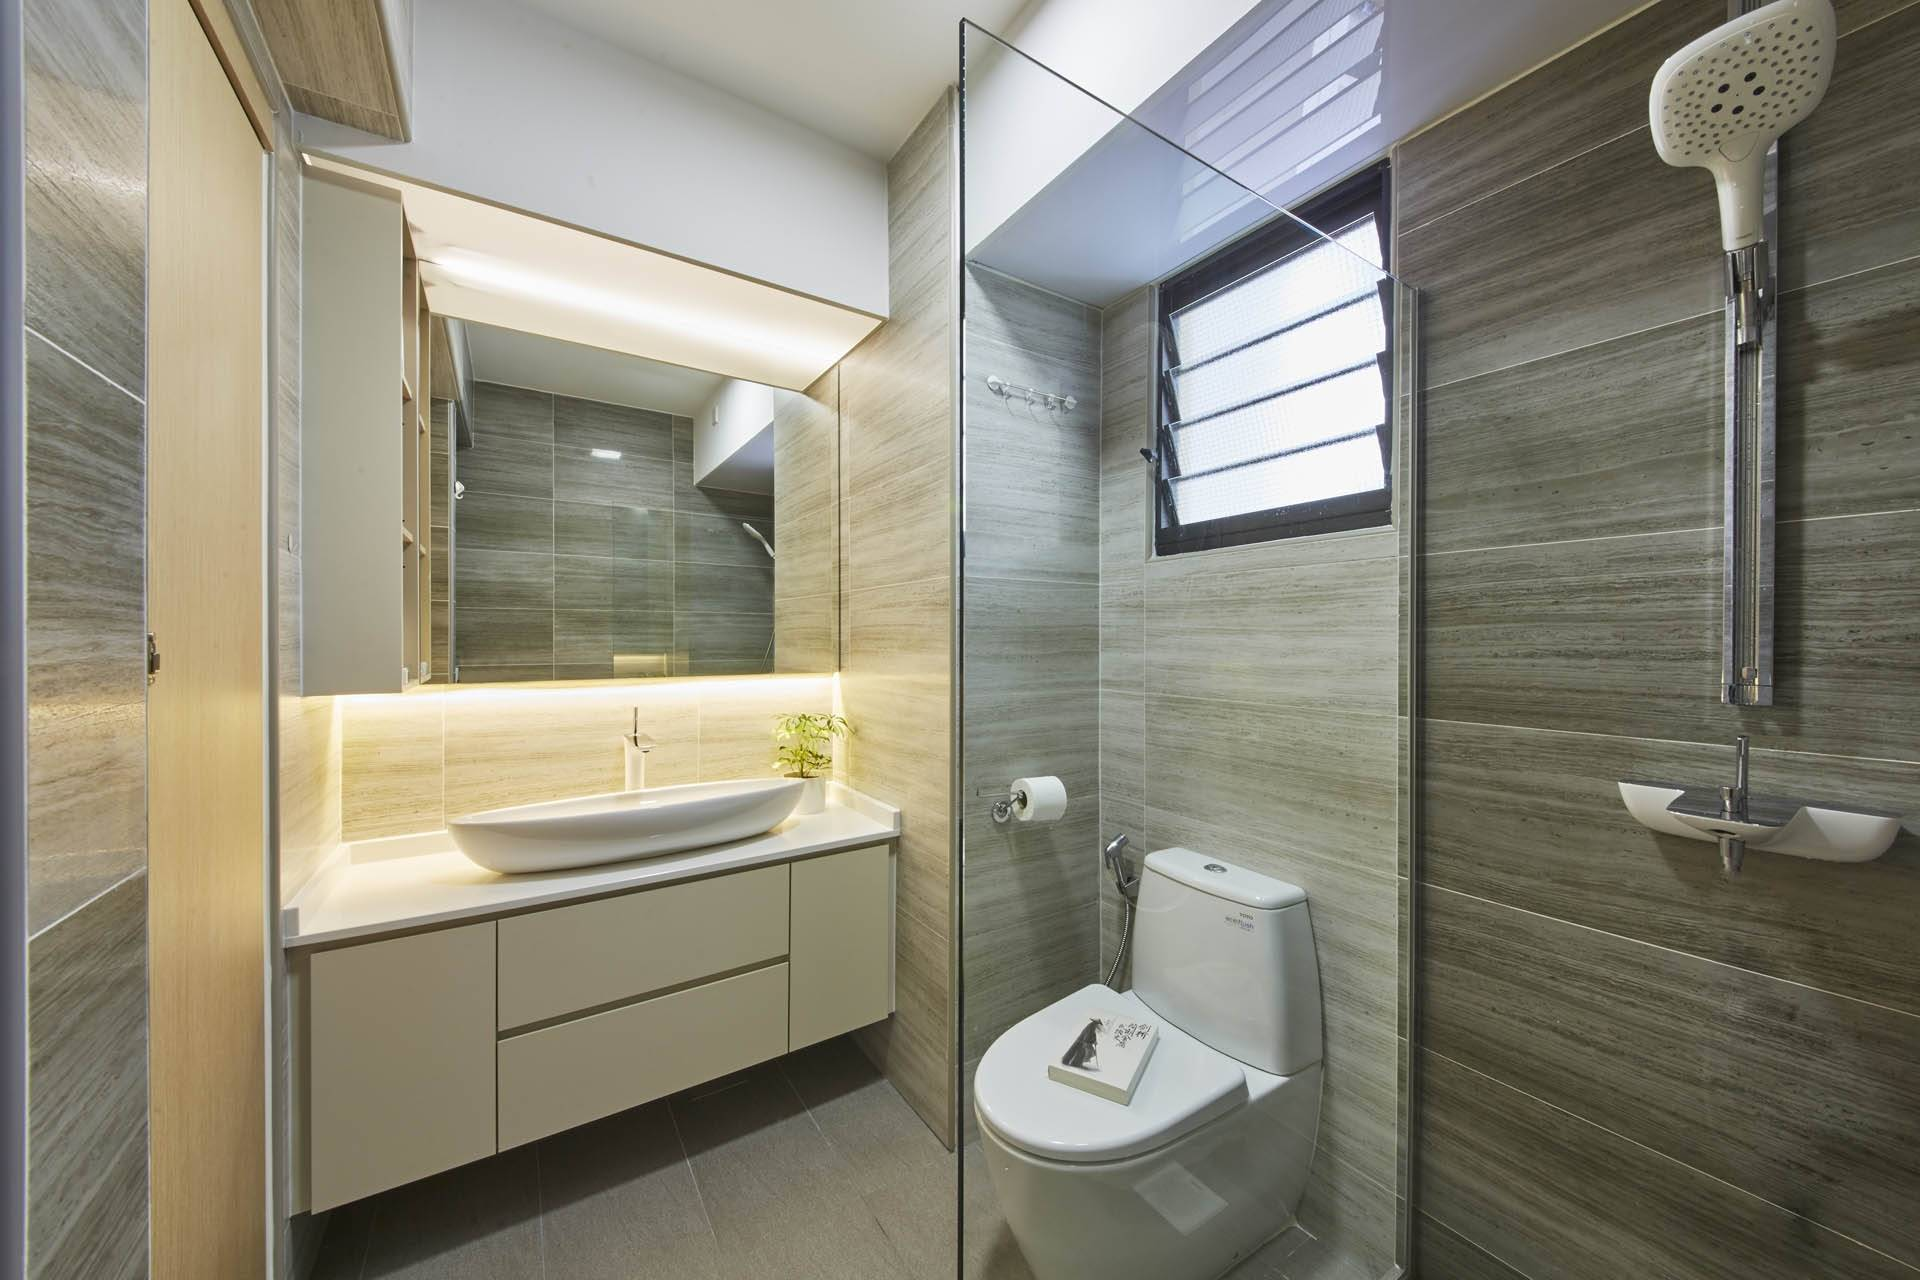 Hdb bathroom design for Toilet bathroom design